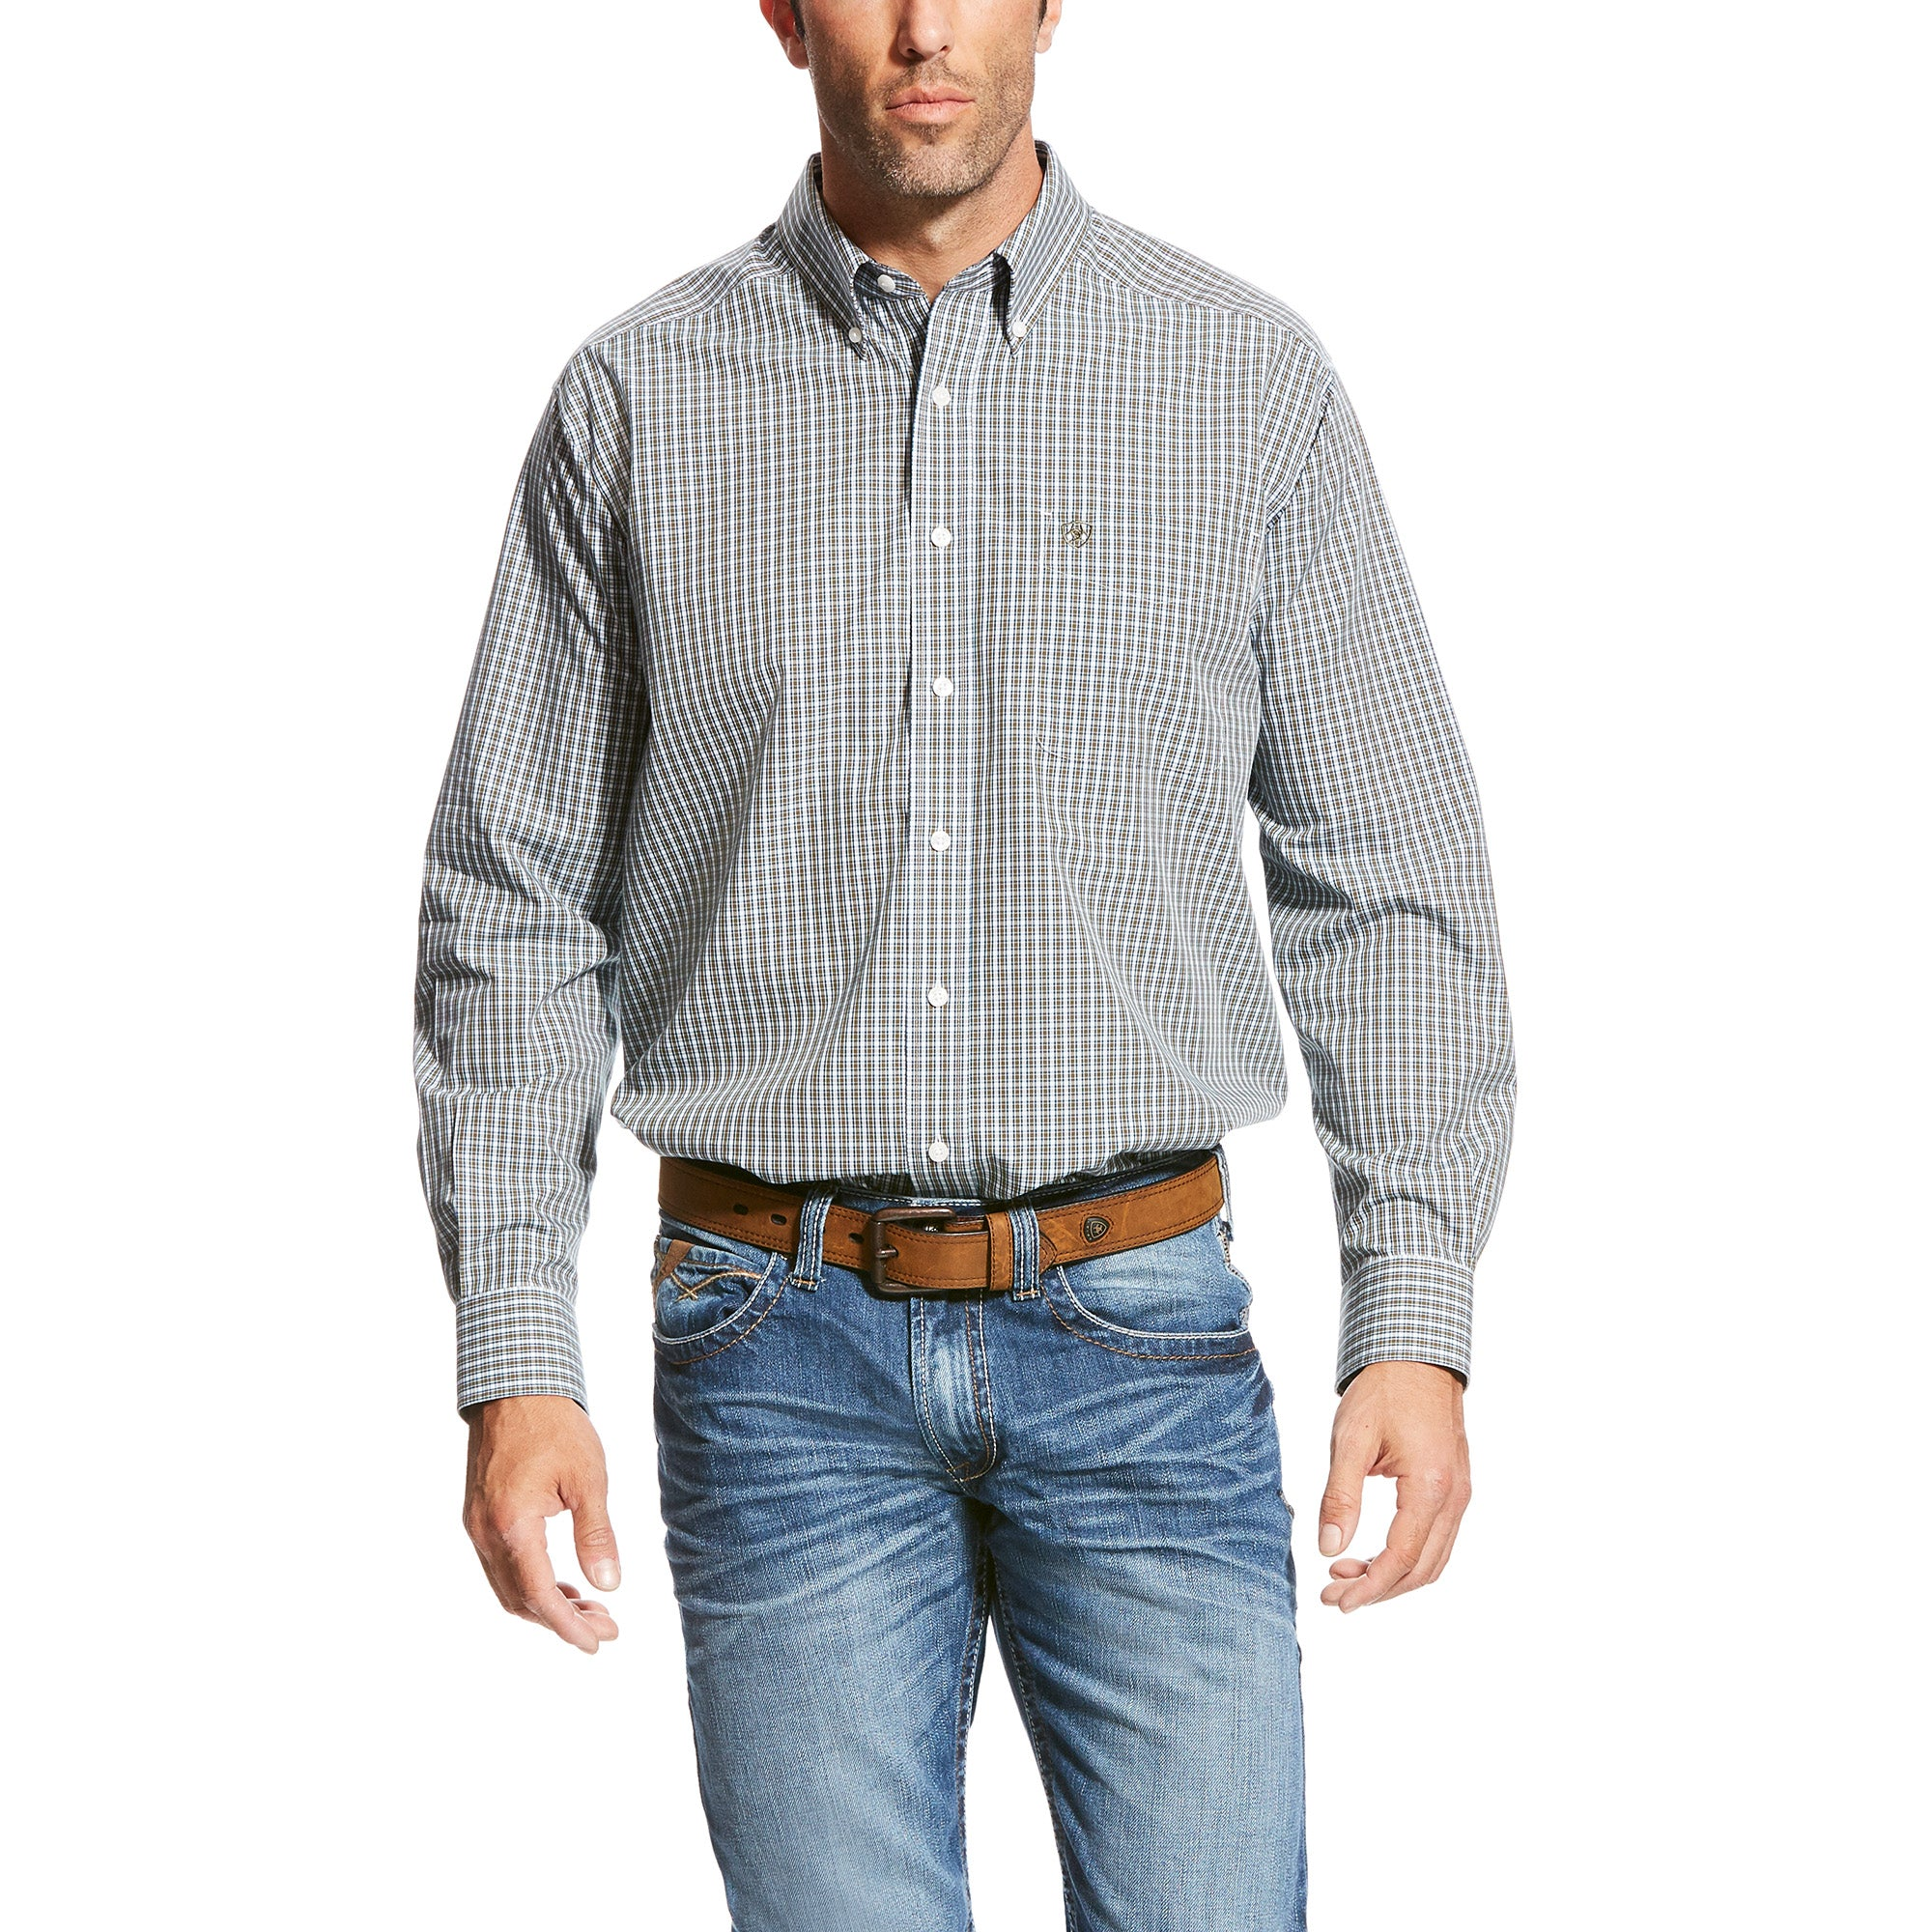 Ariat Ullerich Small Plaid Men's Shirt